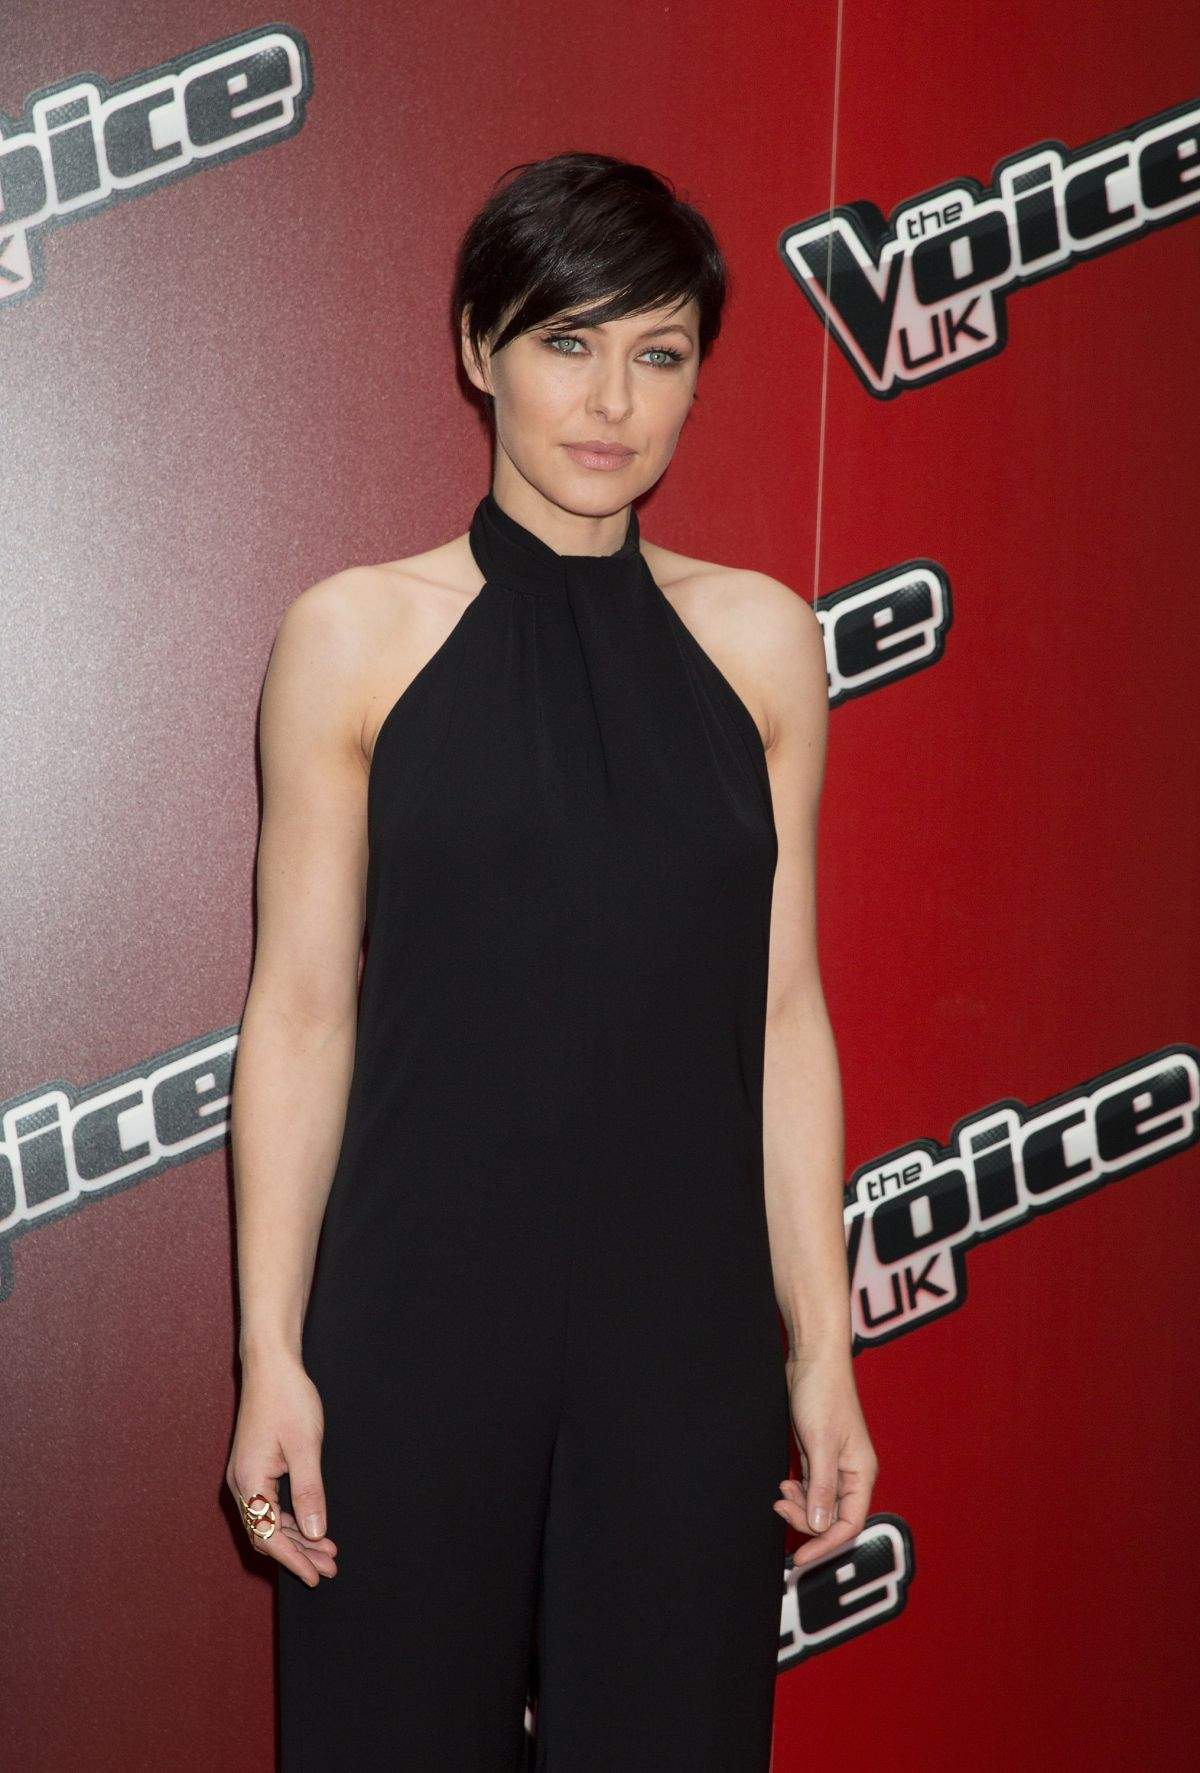 EMMA WILLIS at The Voice UK Series 4 Launch Photocall in London